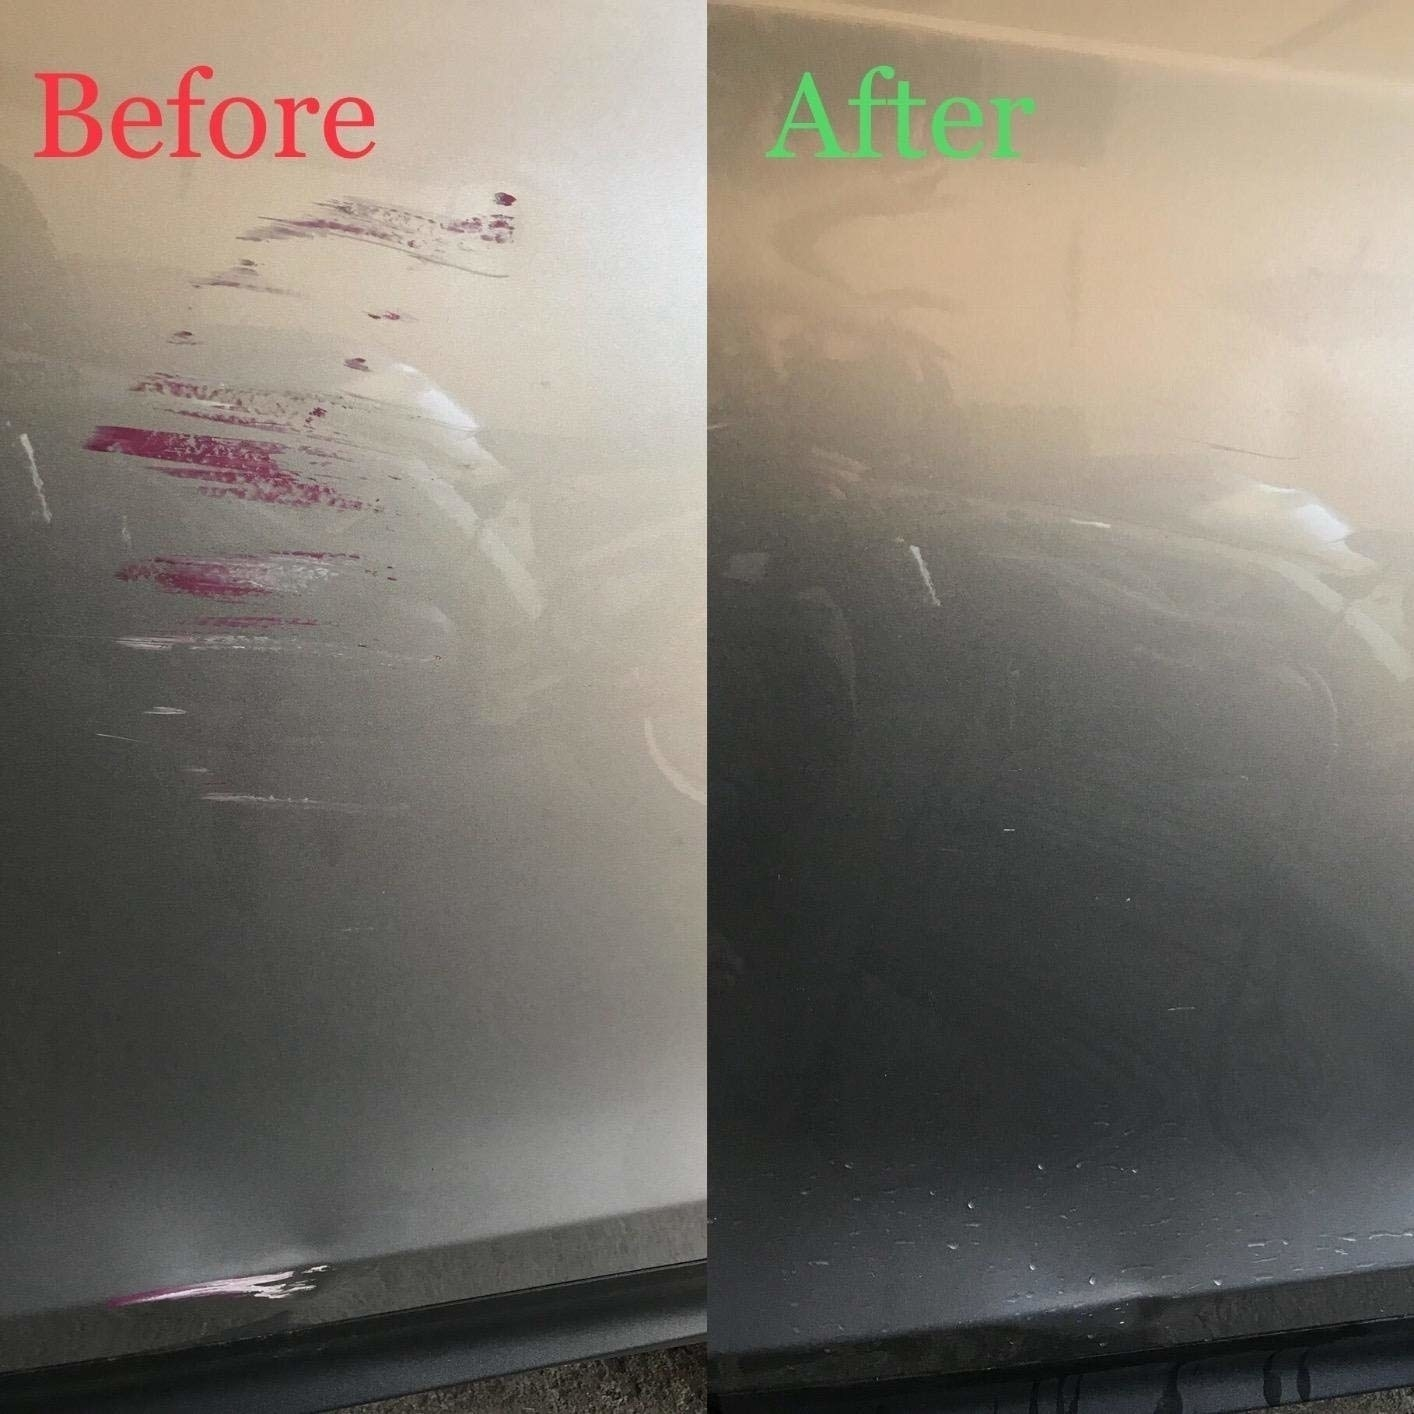 A before-and-after photo showing scuffs that were removed from a car's exterior